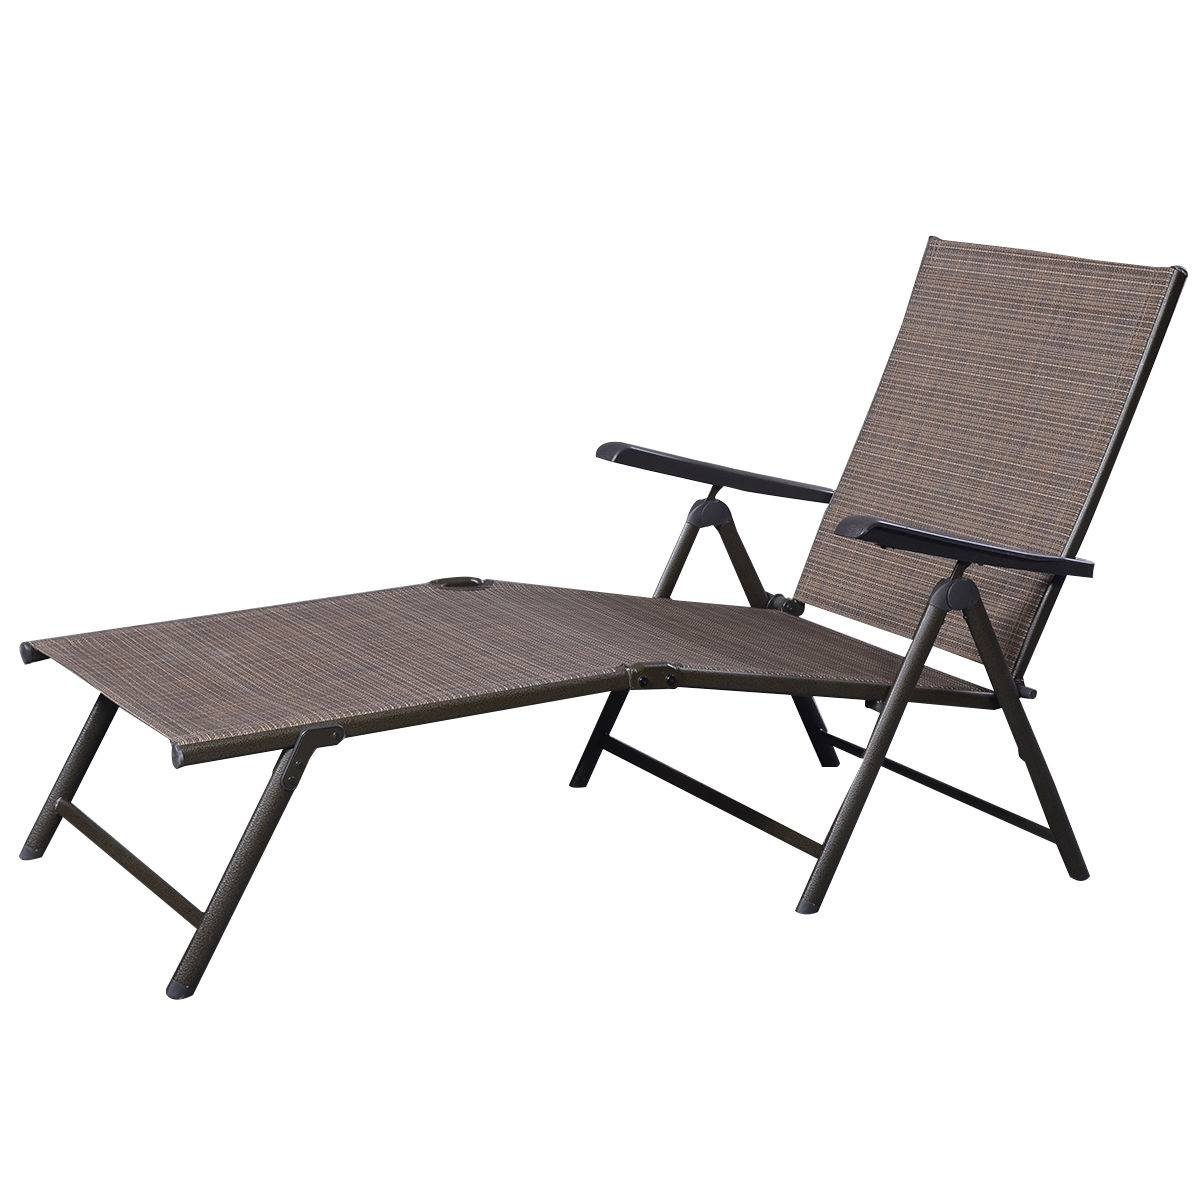 Widely Used Outdoor Ikea Chaise Lounge Chairs Within Outdoor : Chaise Lounge Outdoor Ikea Lowes Patio Furniture (View 15 of 15)